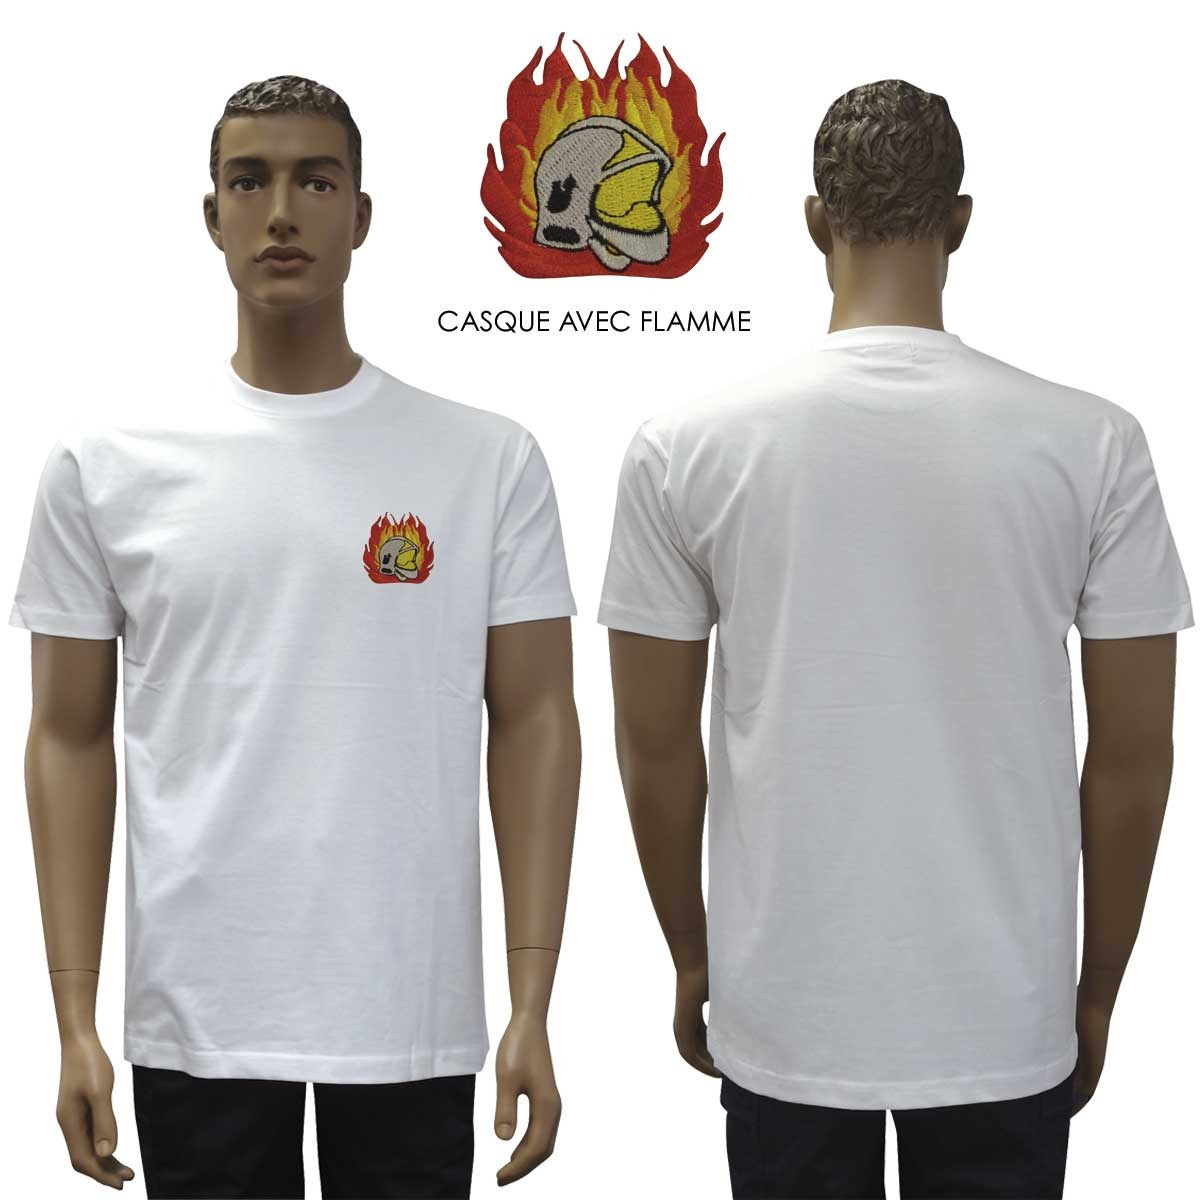 TEE SHIRT BRODE BLANC MANCHES COURTES